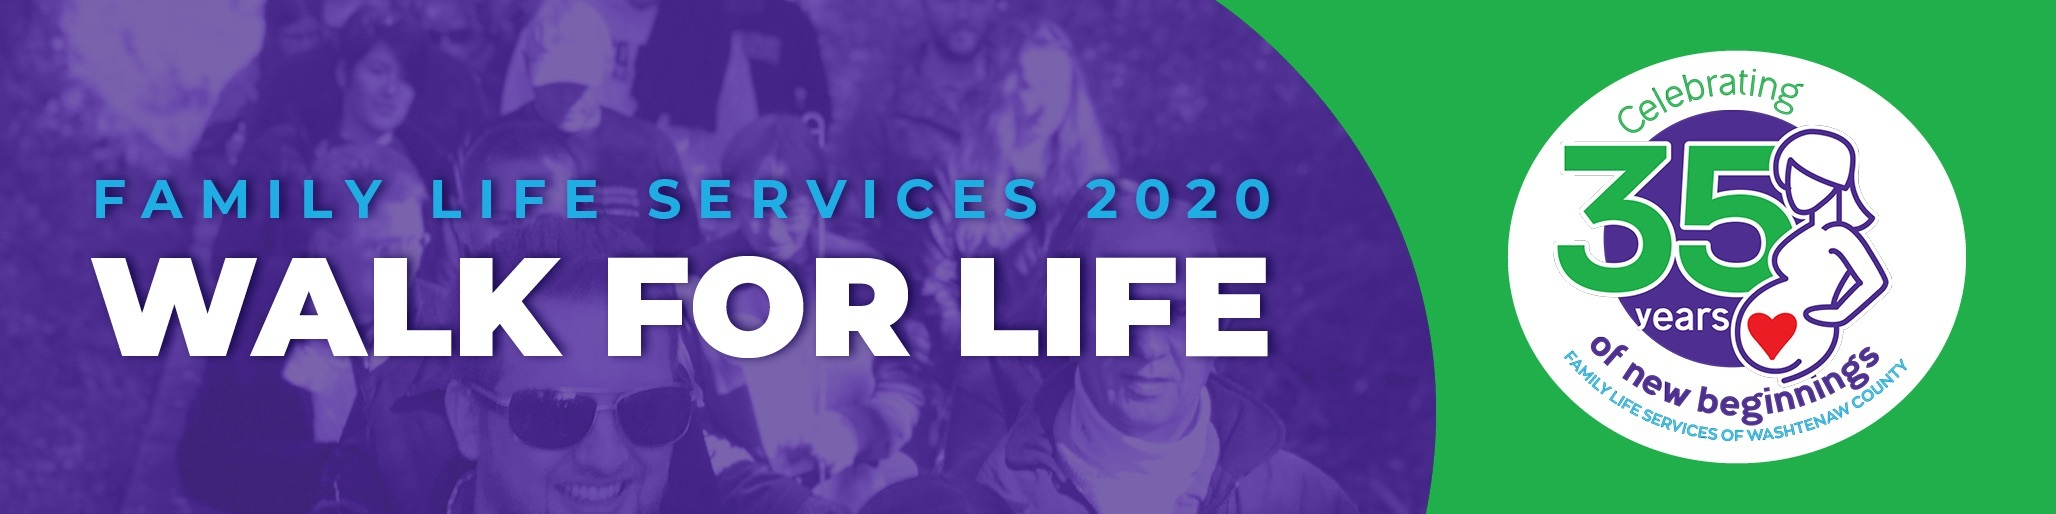 Family Life Services 2020 Walk for Life header and logo